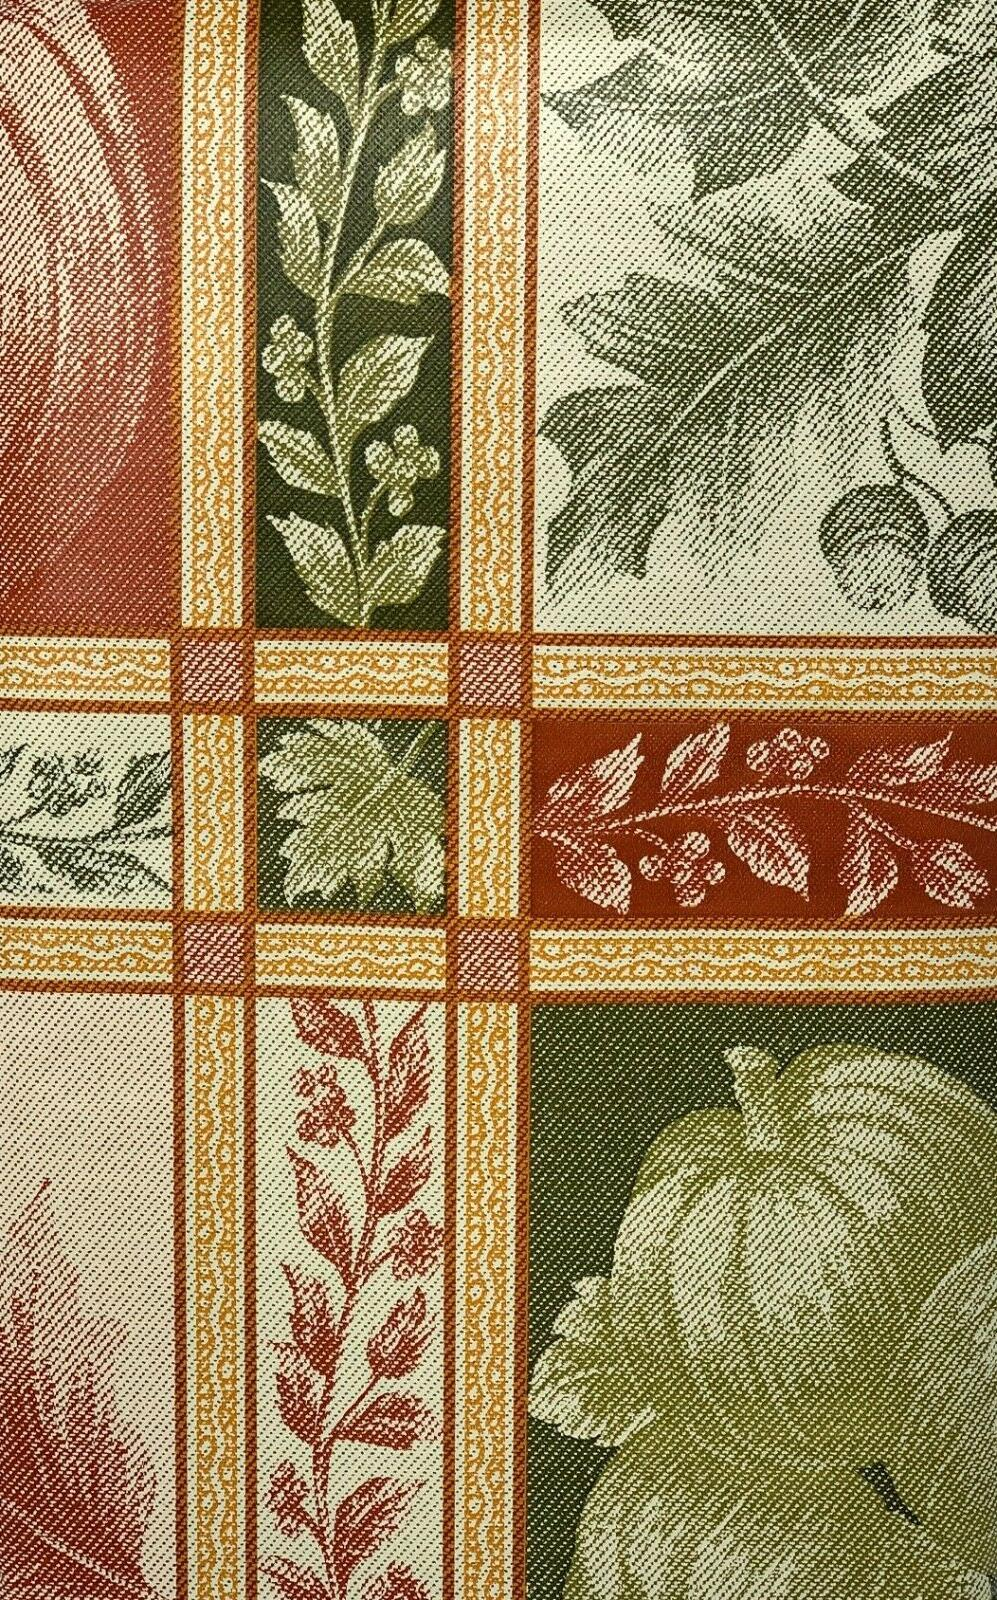 Autumn Vinyl Tablecloth. Round, Square, Oblong. Fall party